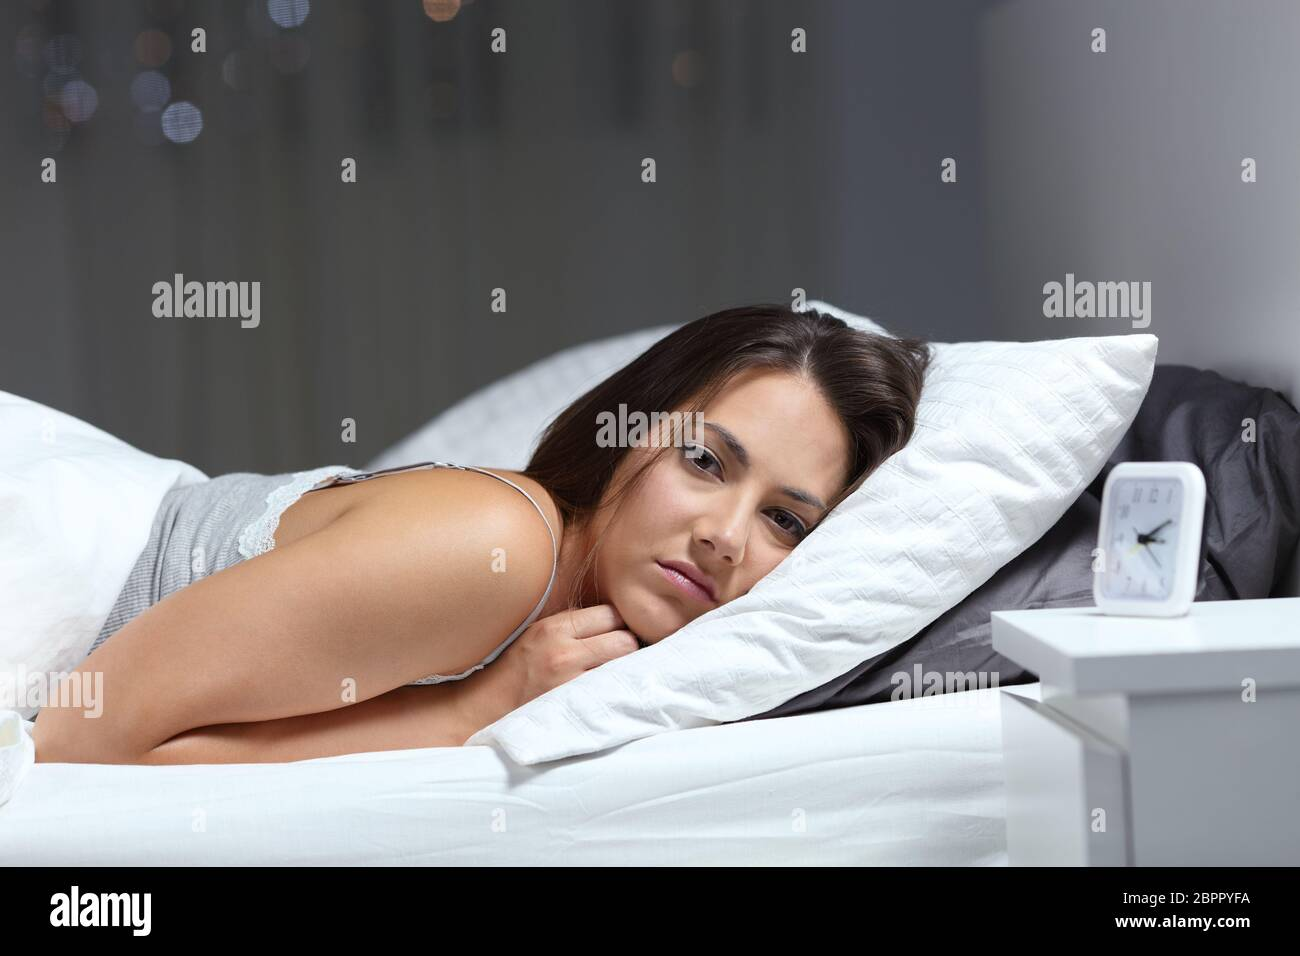 Restless girl suffering insomnia looking at you in the bed in the night Stock Photo